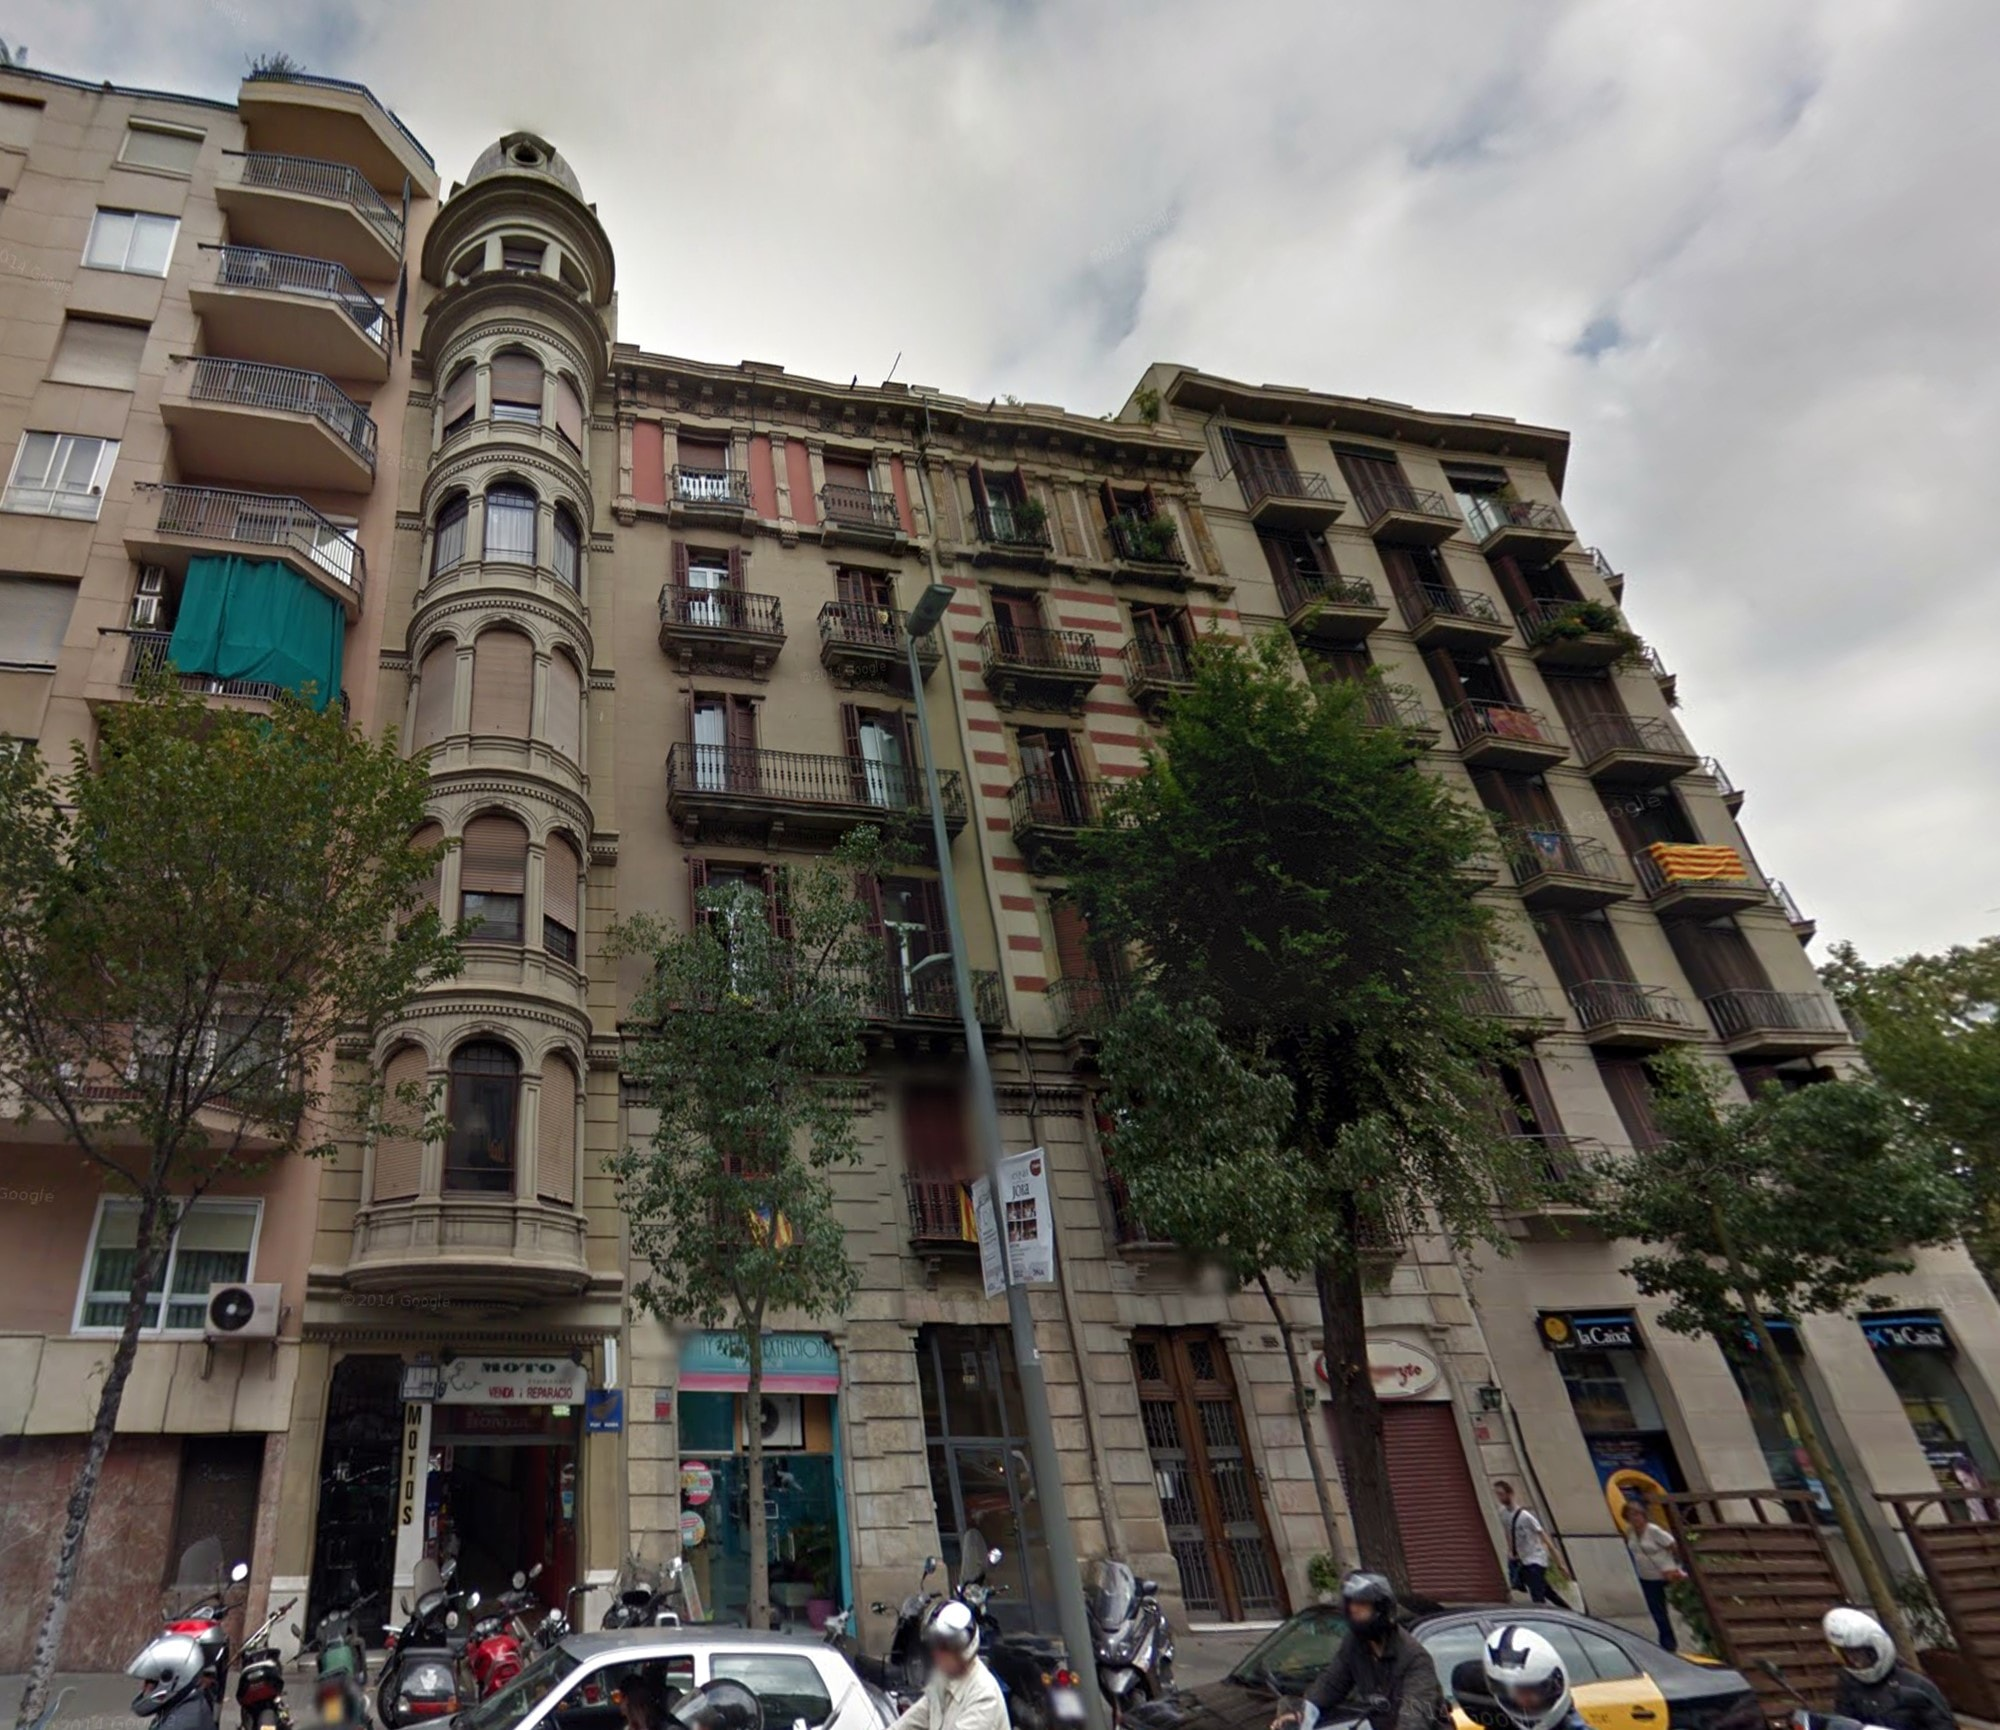 2 Bedroom Apartment For Sale Barcelona